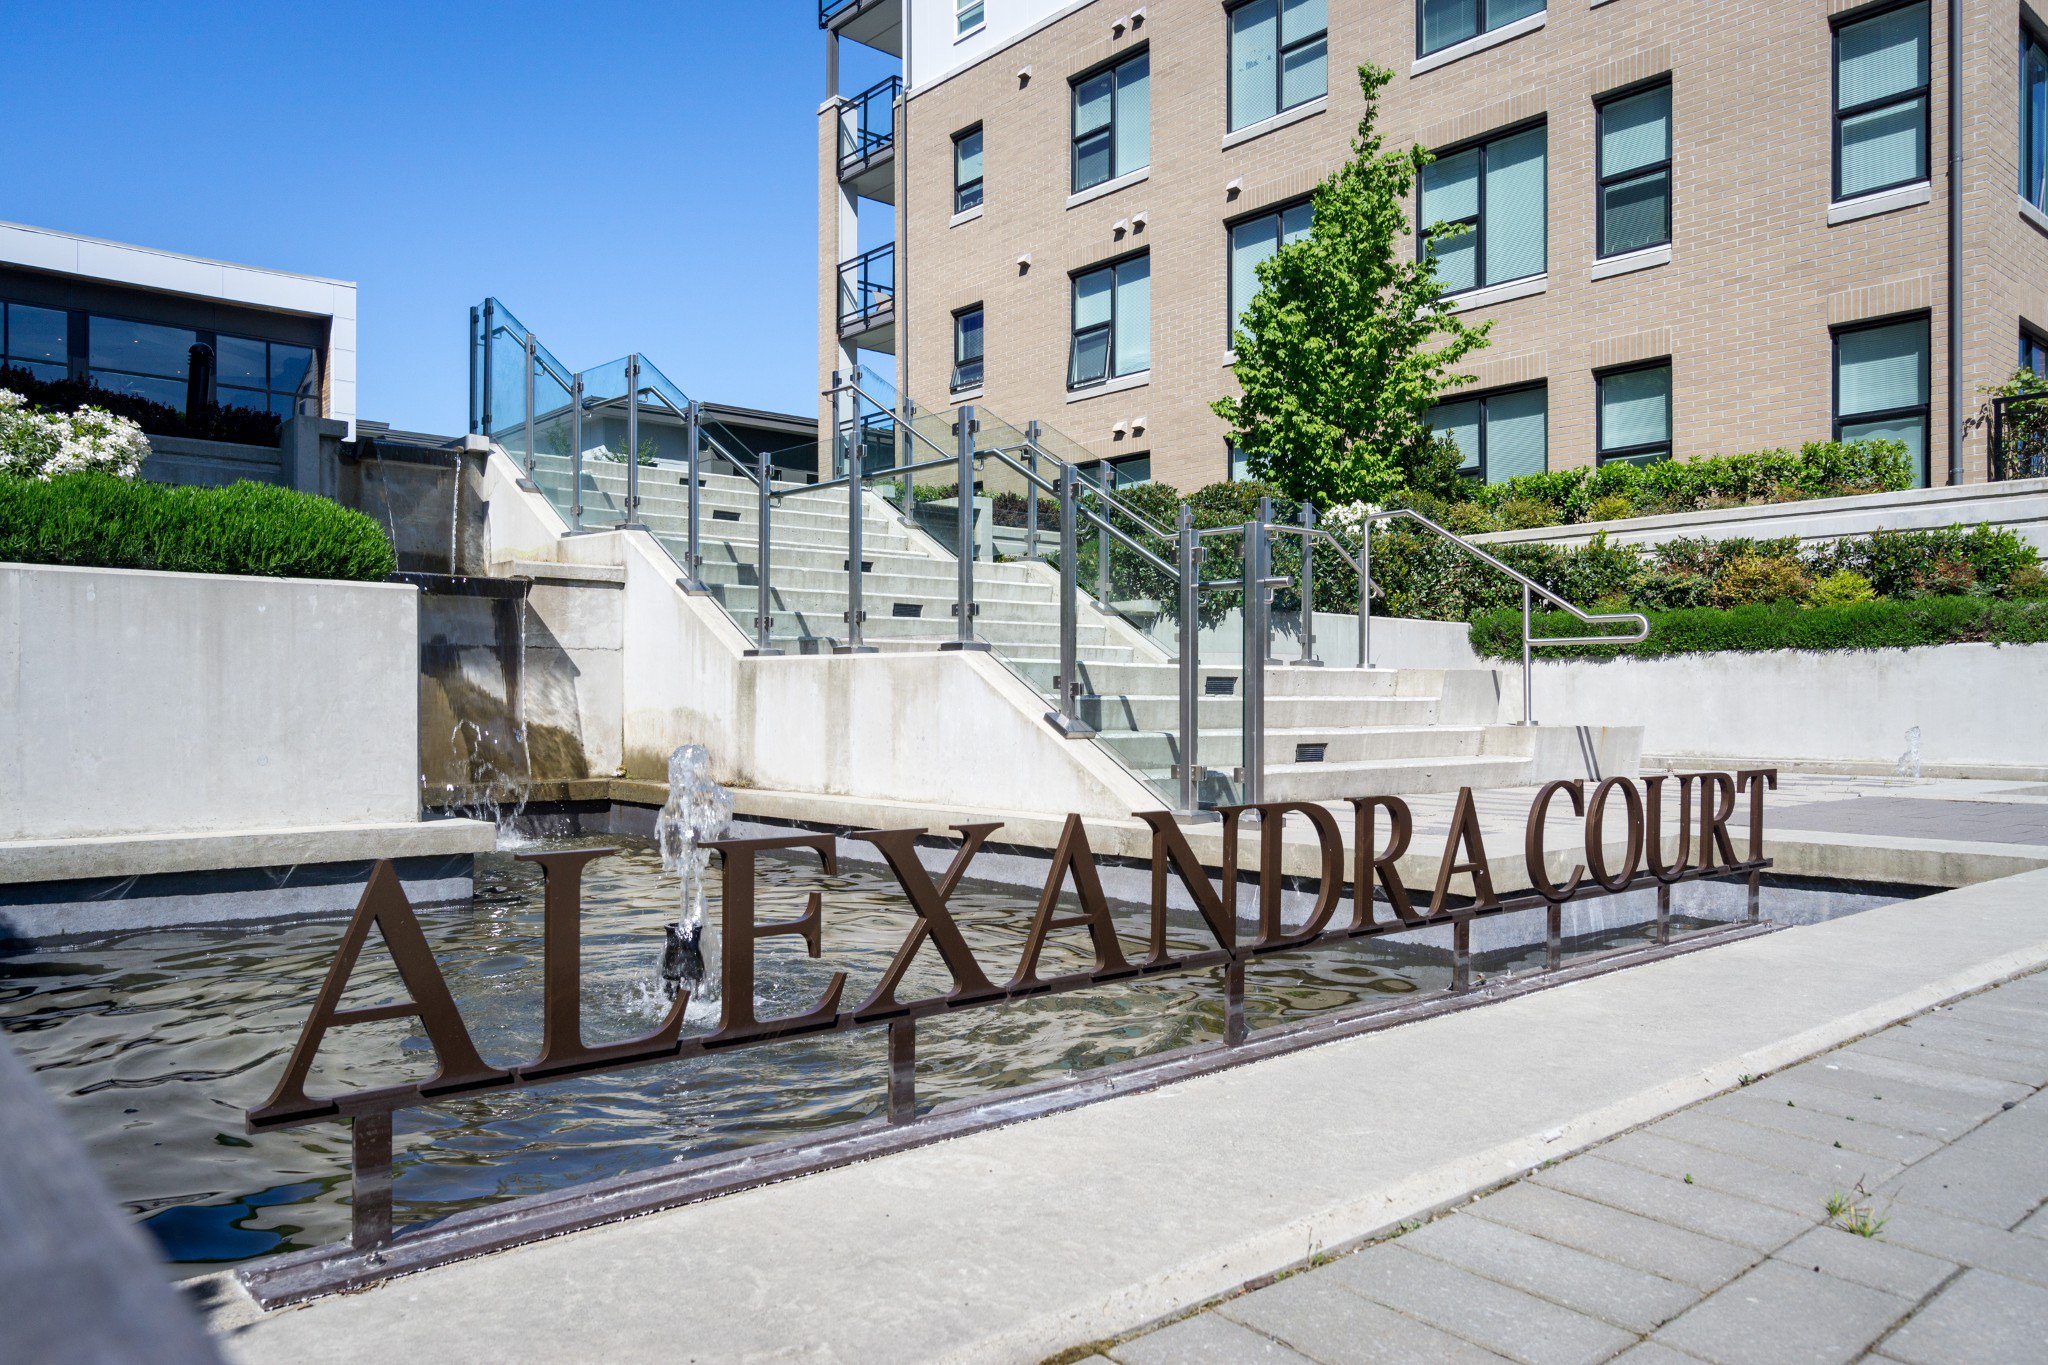 """Photo 35: Photos: 402 9311 ALEXANDRA Road in Richmond: West Cambie Condo for sale in """"ALEXANDRA COURT"""" : MLS®# R2266613"""